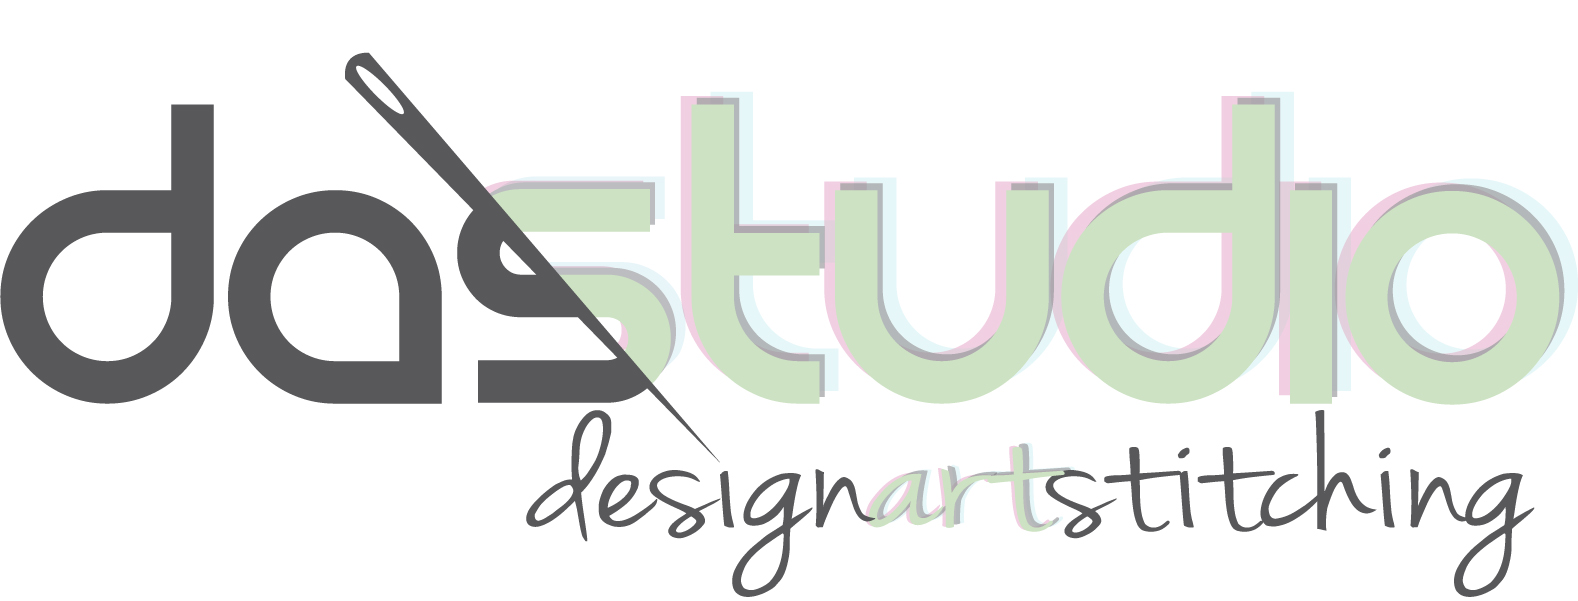 Graphic designer | DAStudioDesigns